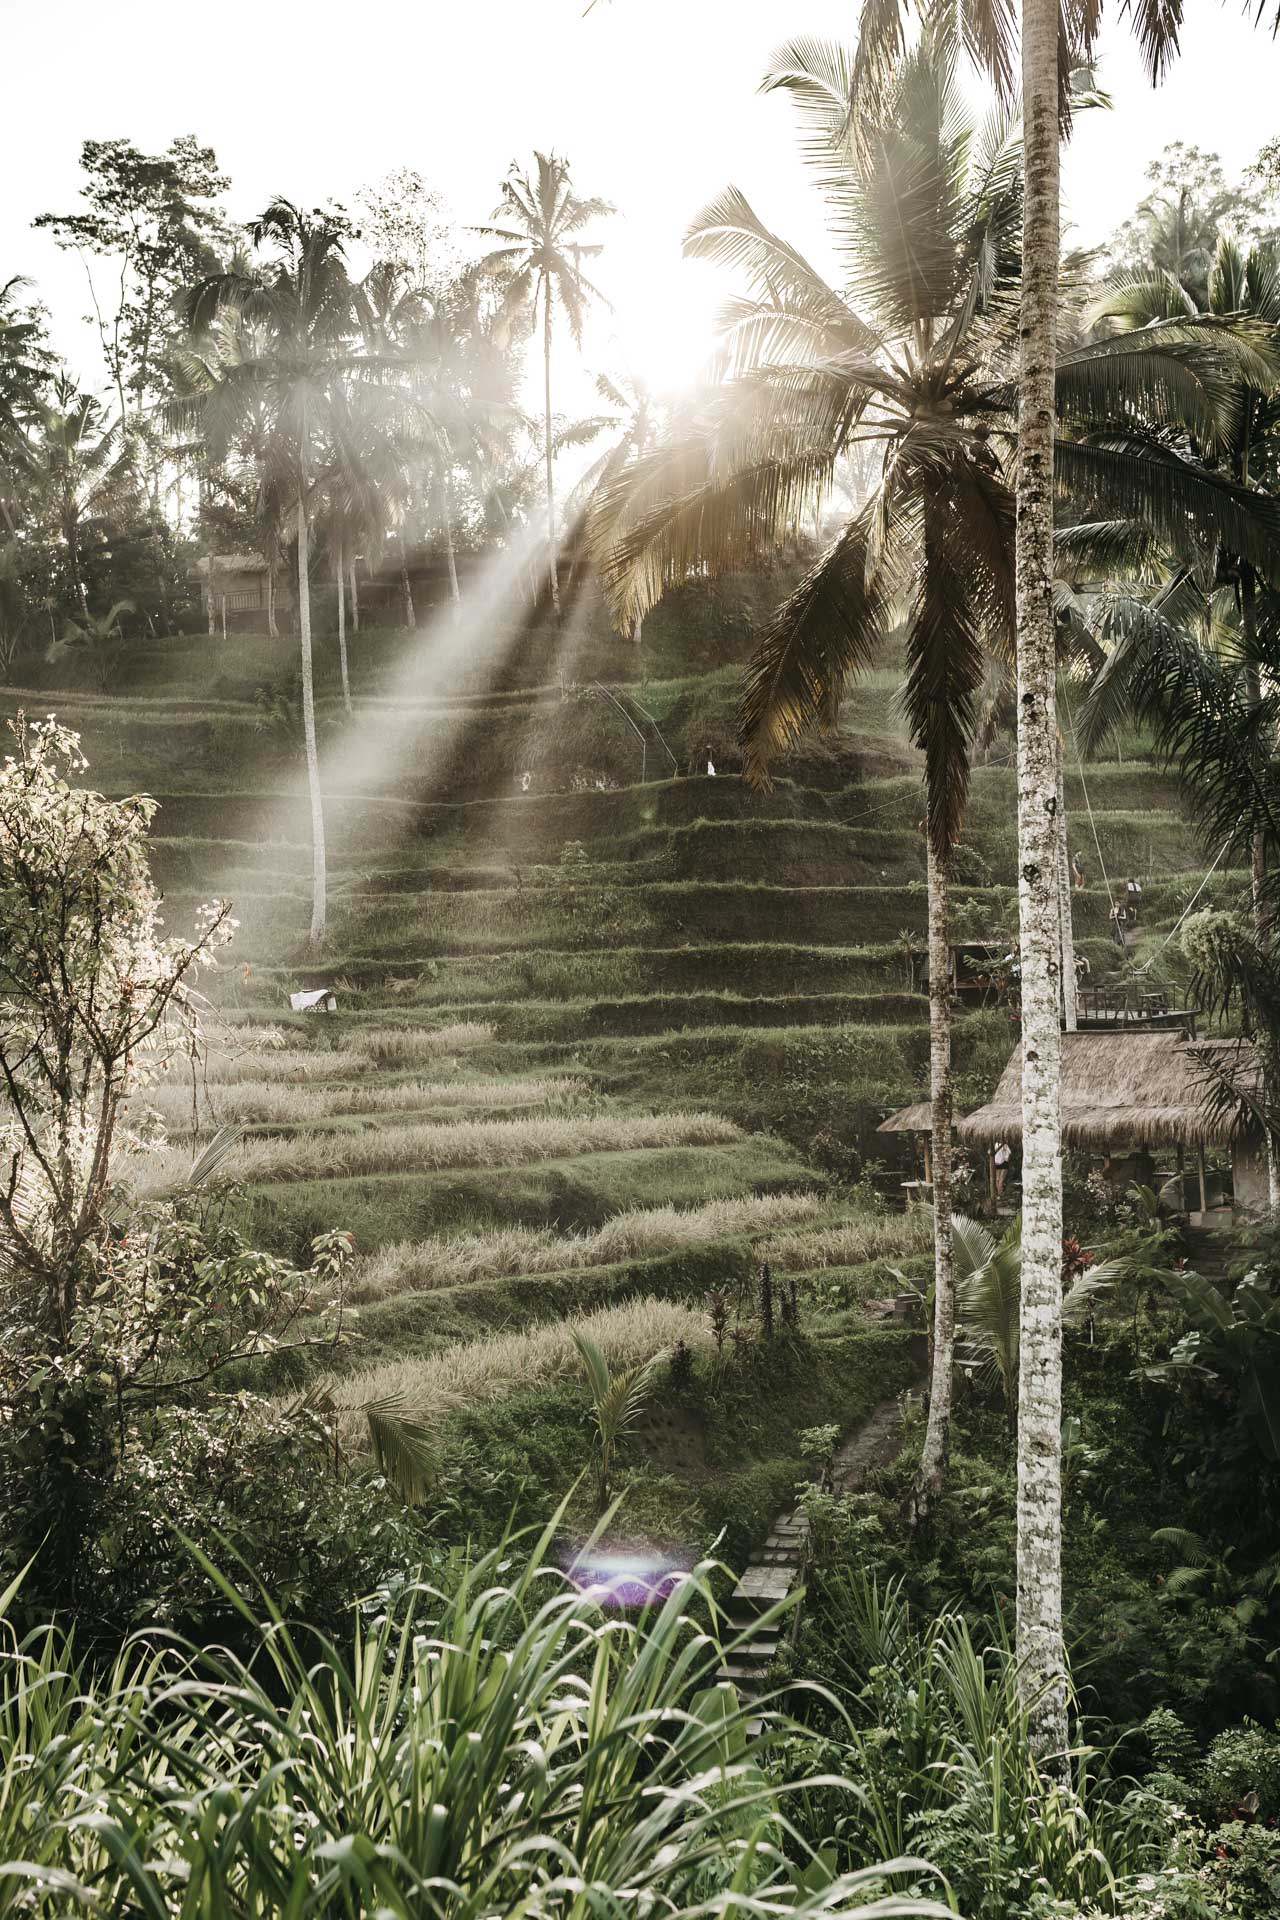 keira-mason-nordic-retreats-ubud-palm-trees.jpg